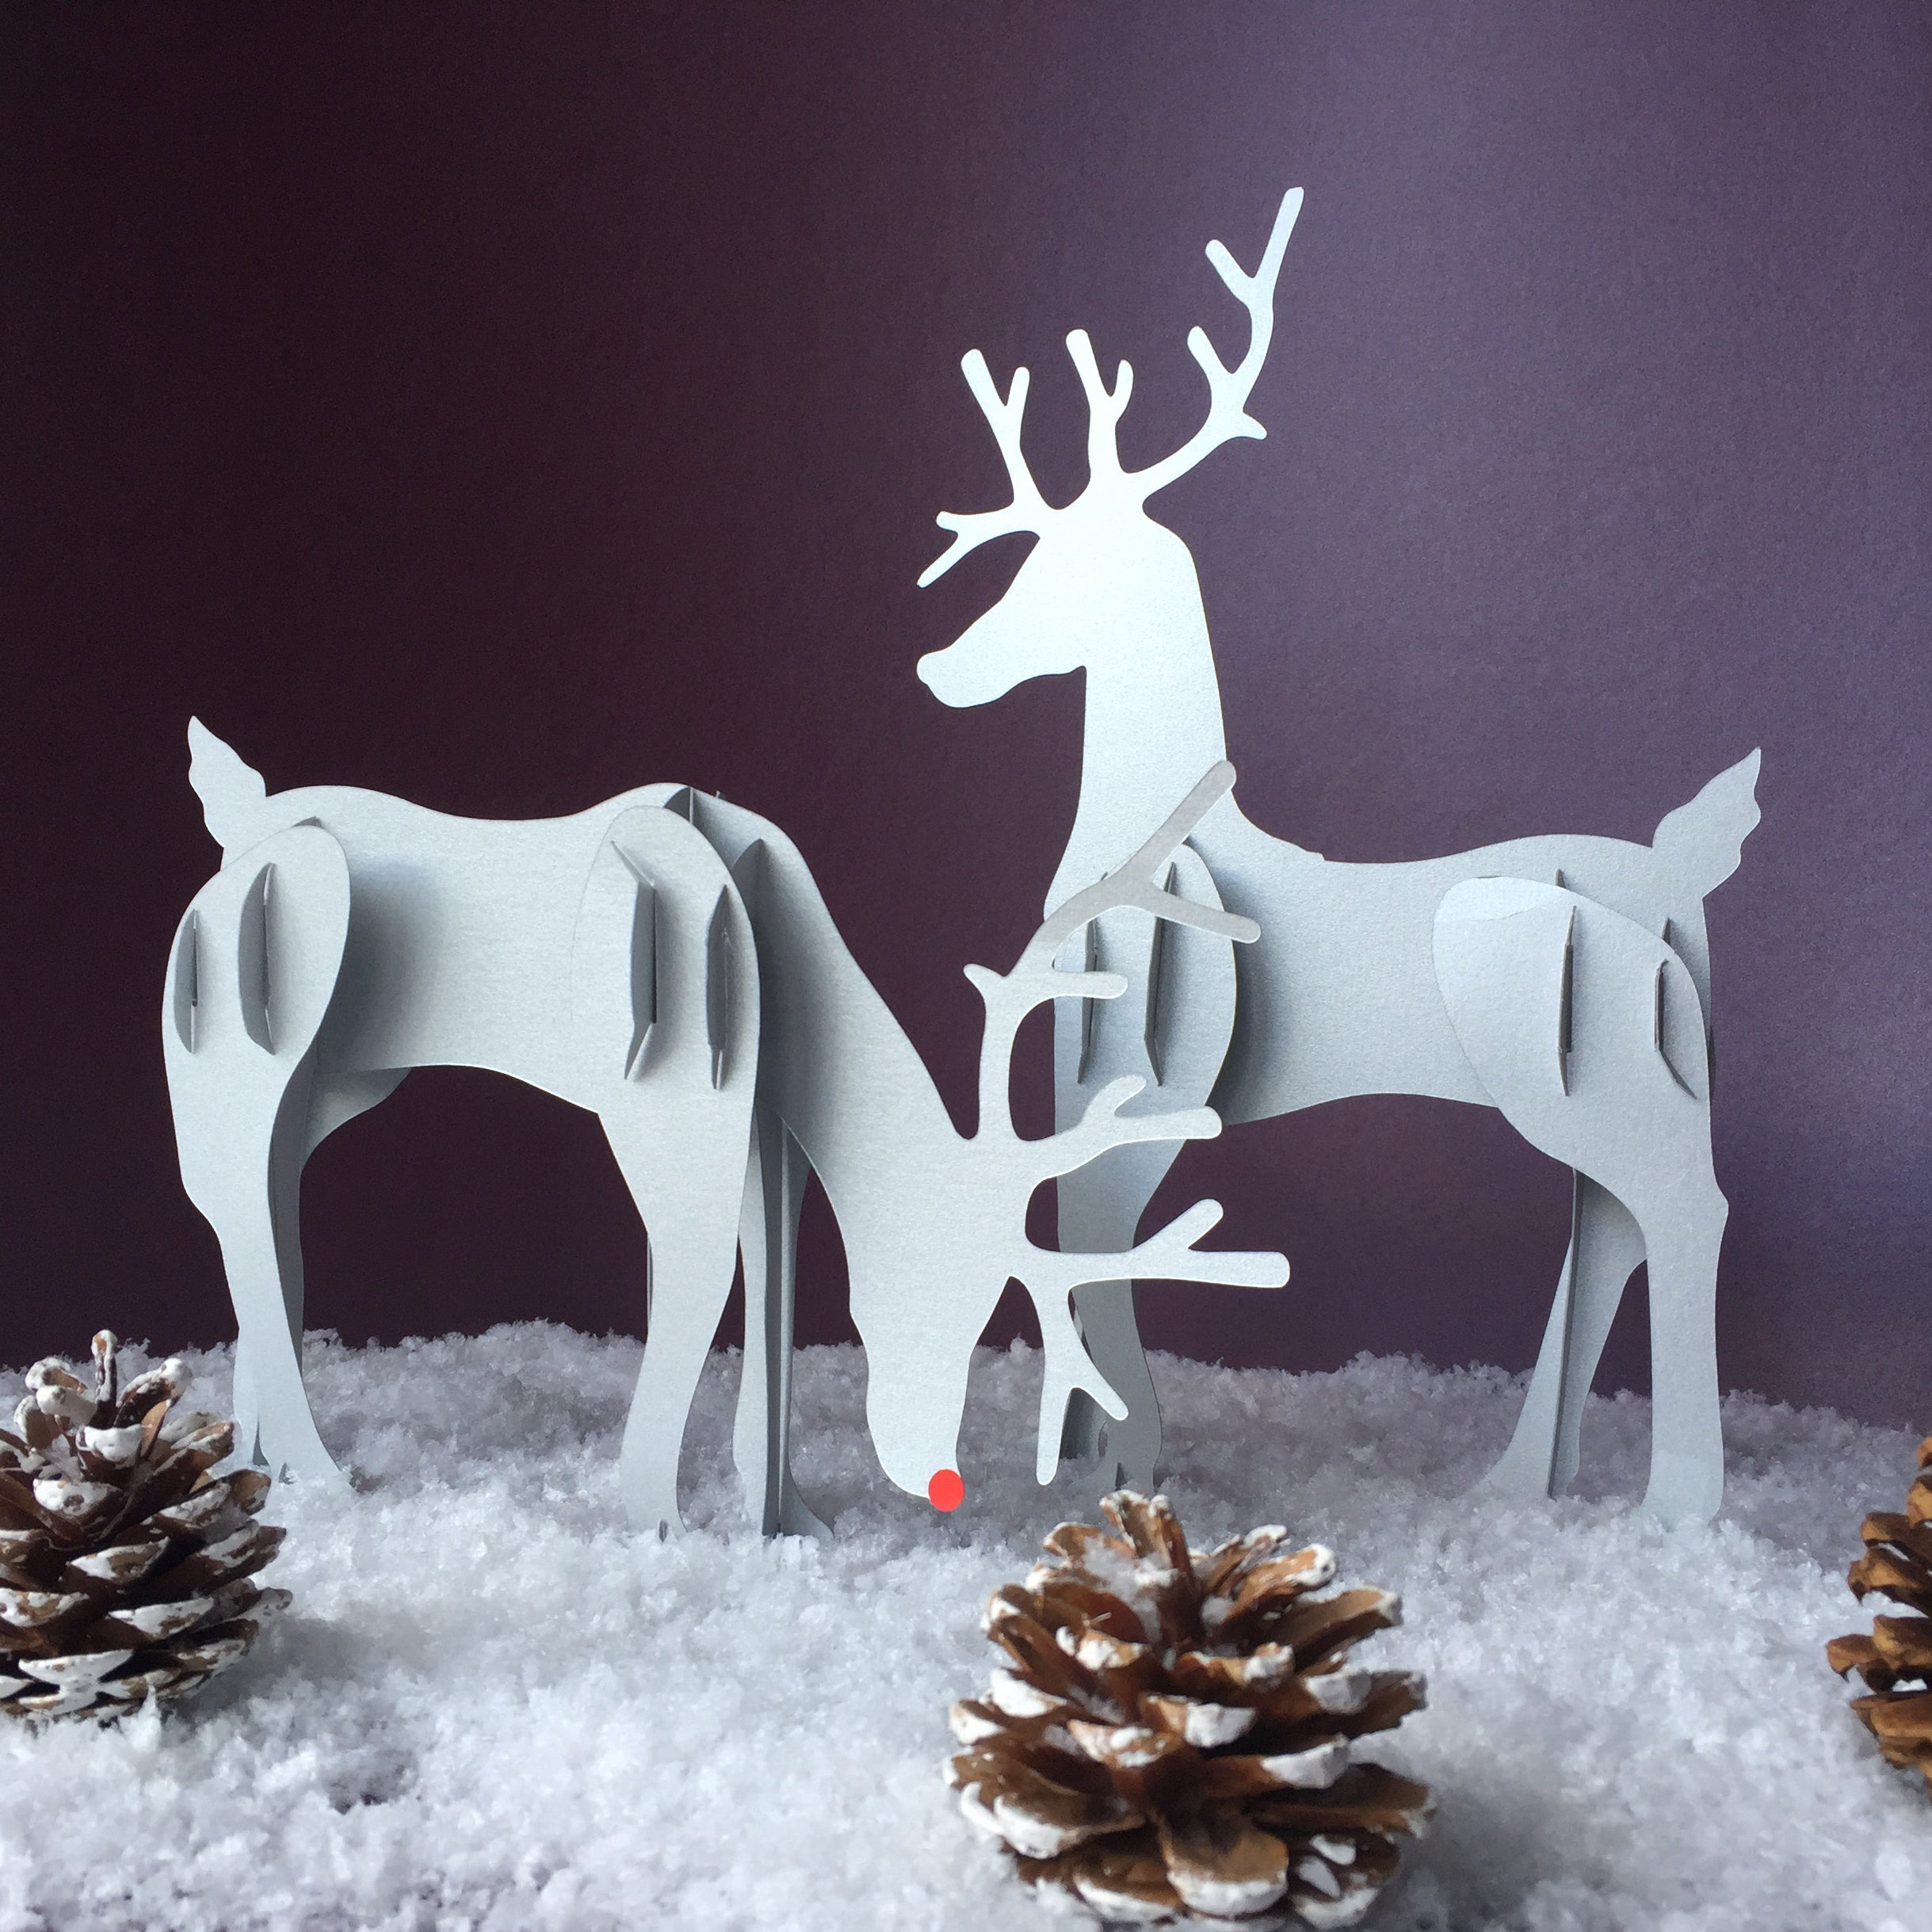 Decorate it Yourself - Rudolf and Friend Reindeer Kit